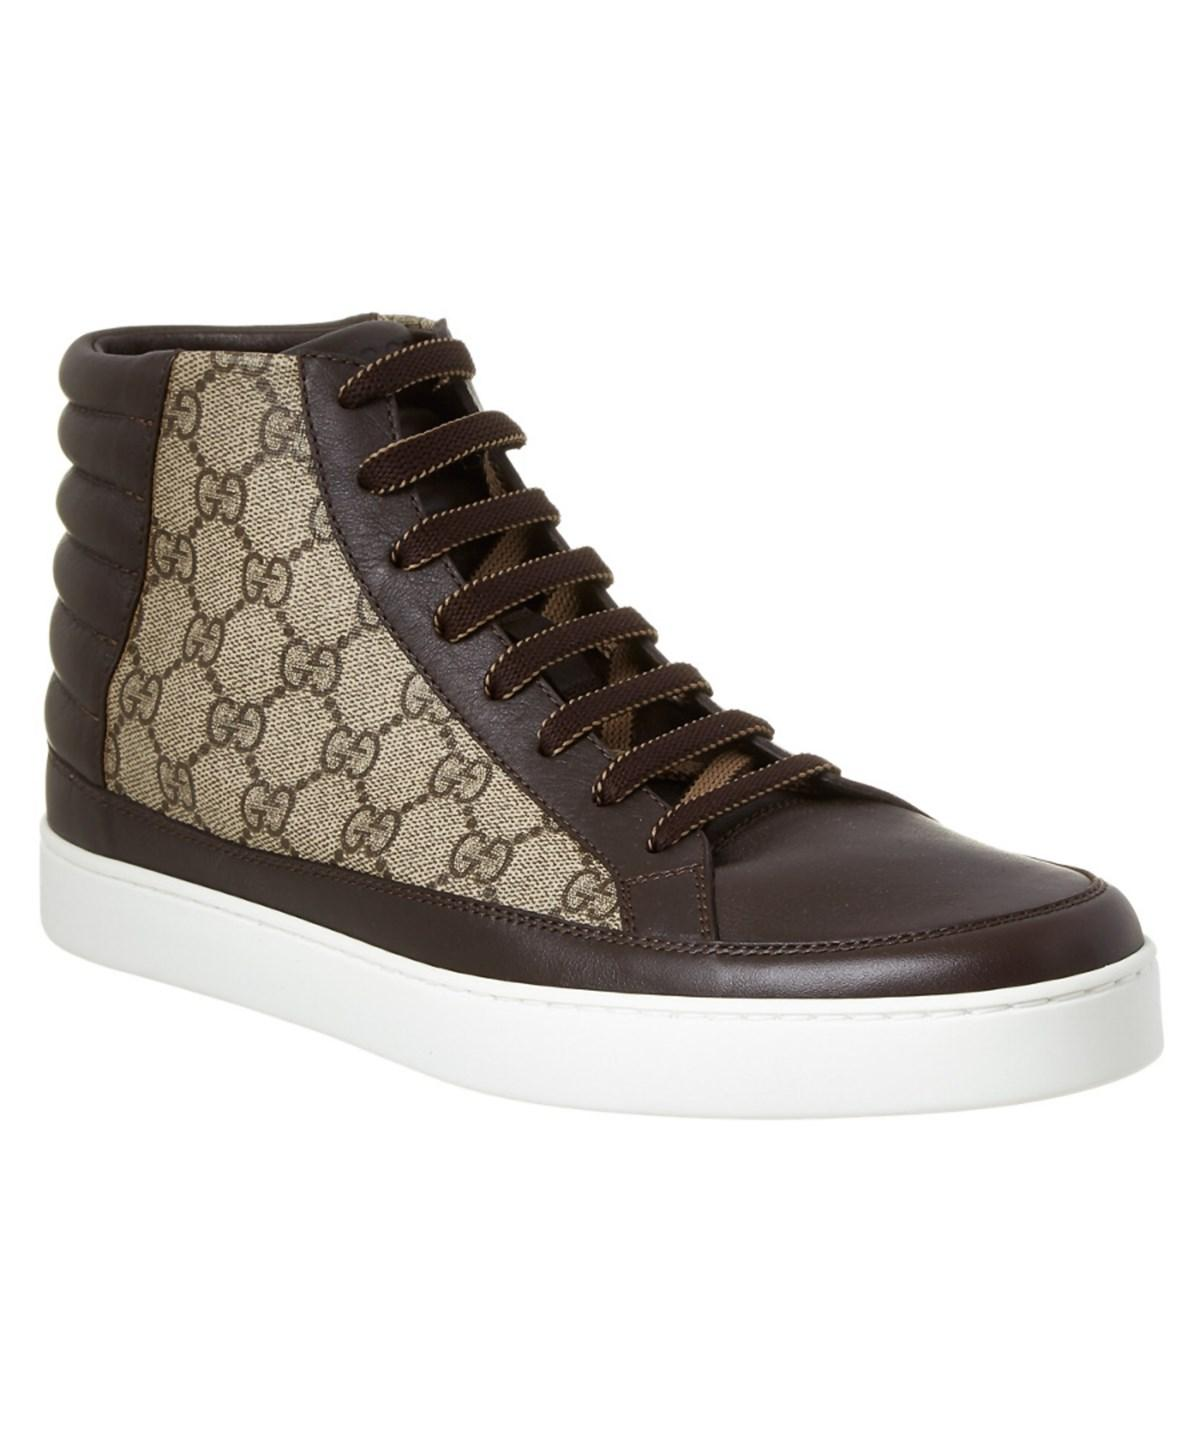 4e05f7bf1046 Gucci Mens High Top Trainers